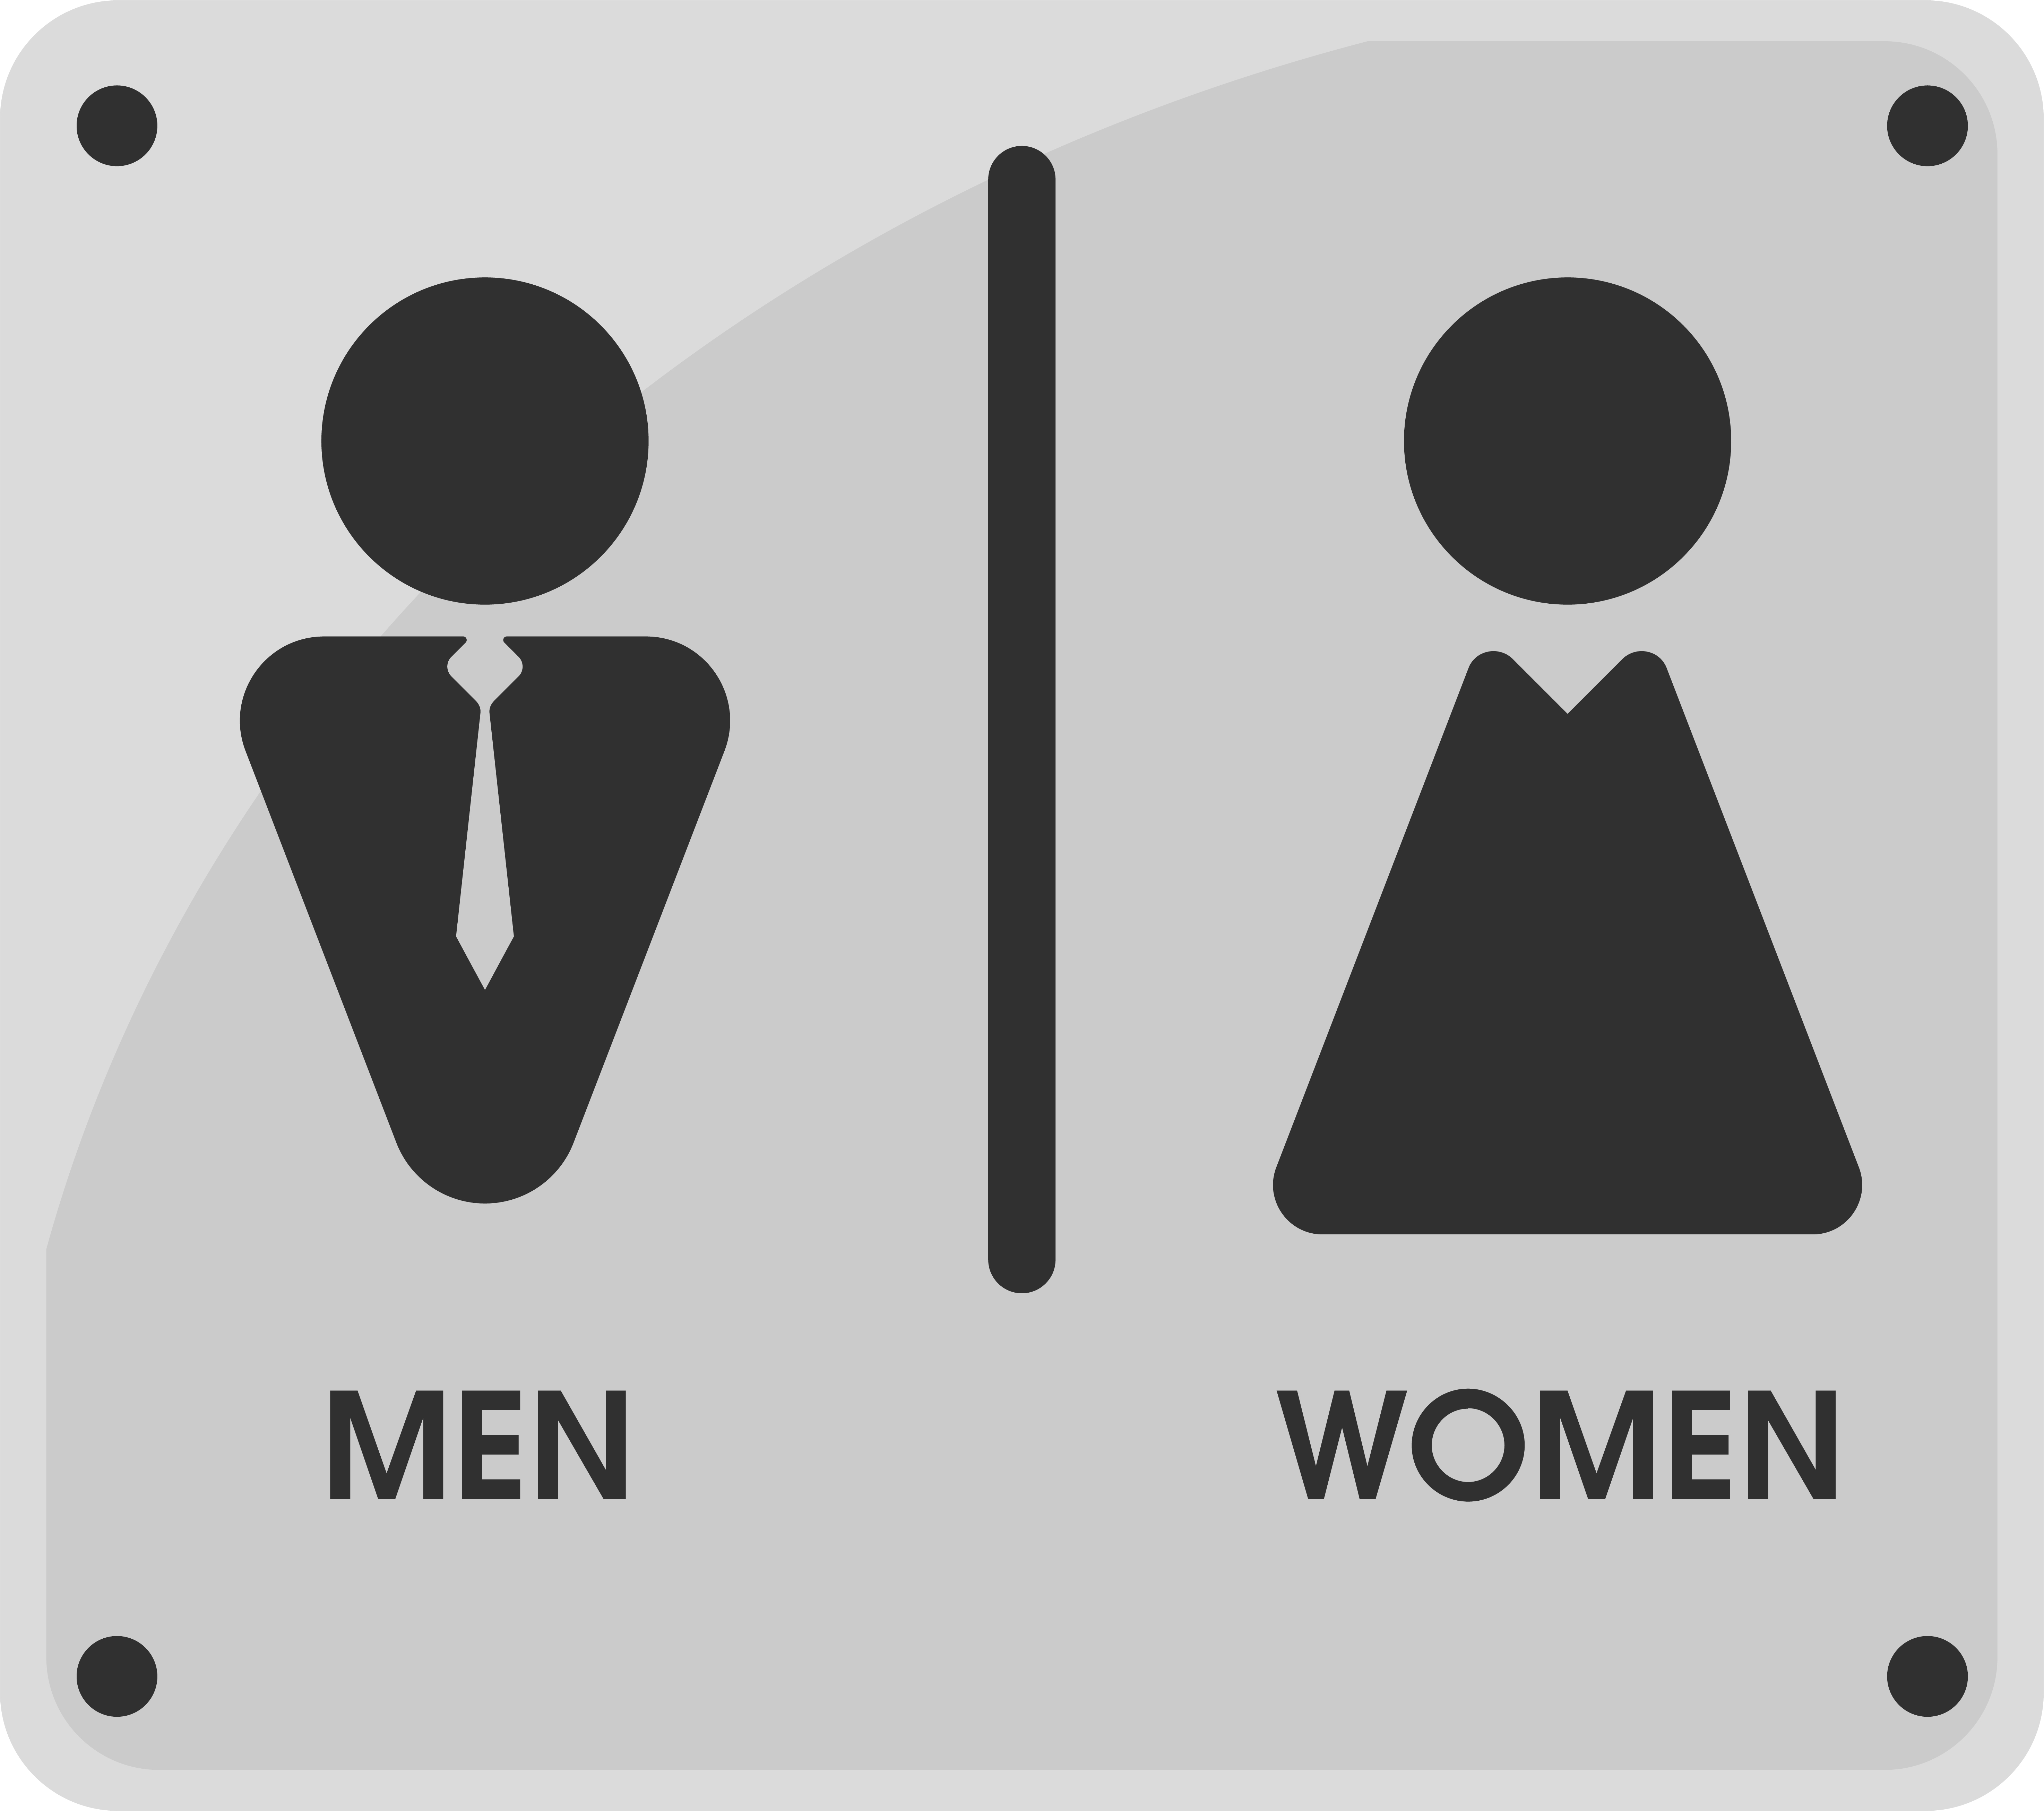 men and women toilet icon themes that looks simple and modern. vector  illustration. 600529 vector art at vecteezy  vecteezy